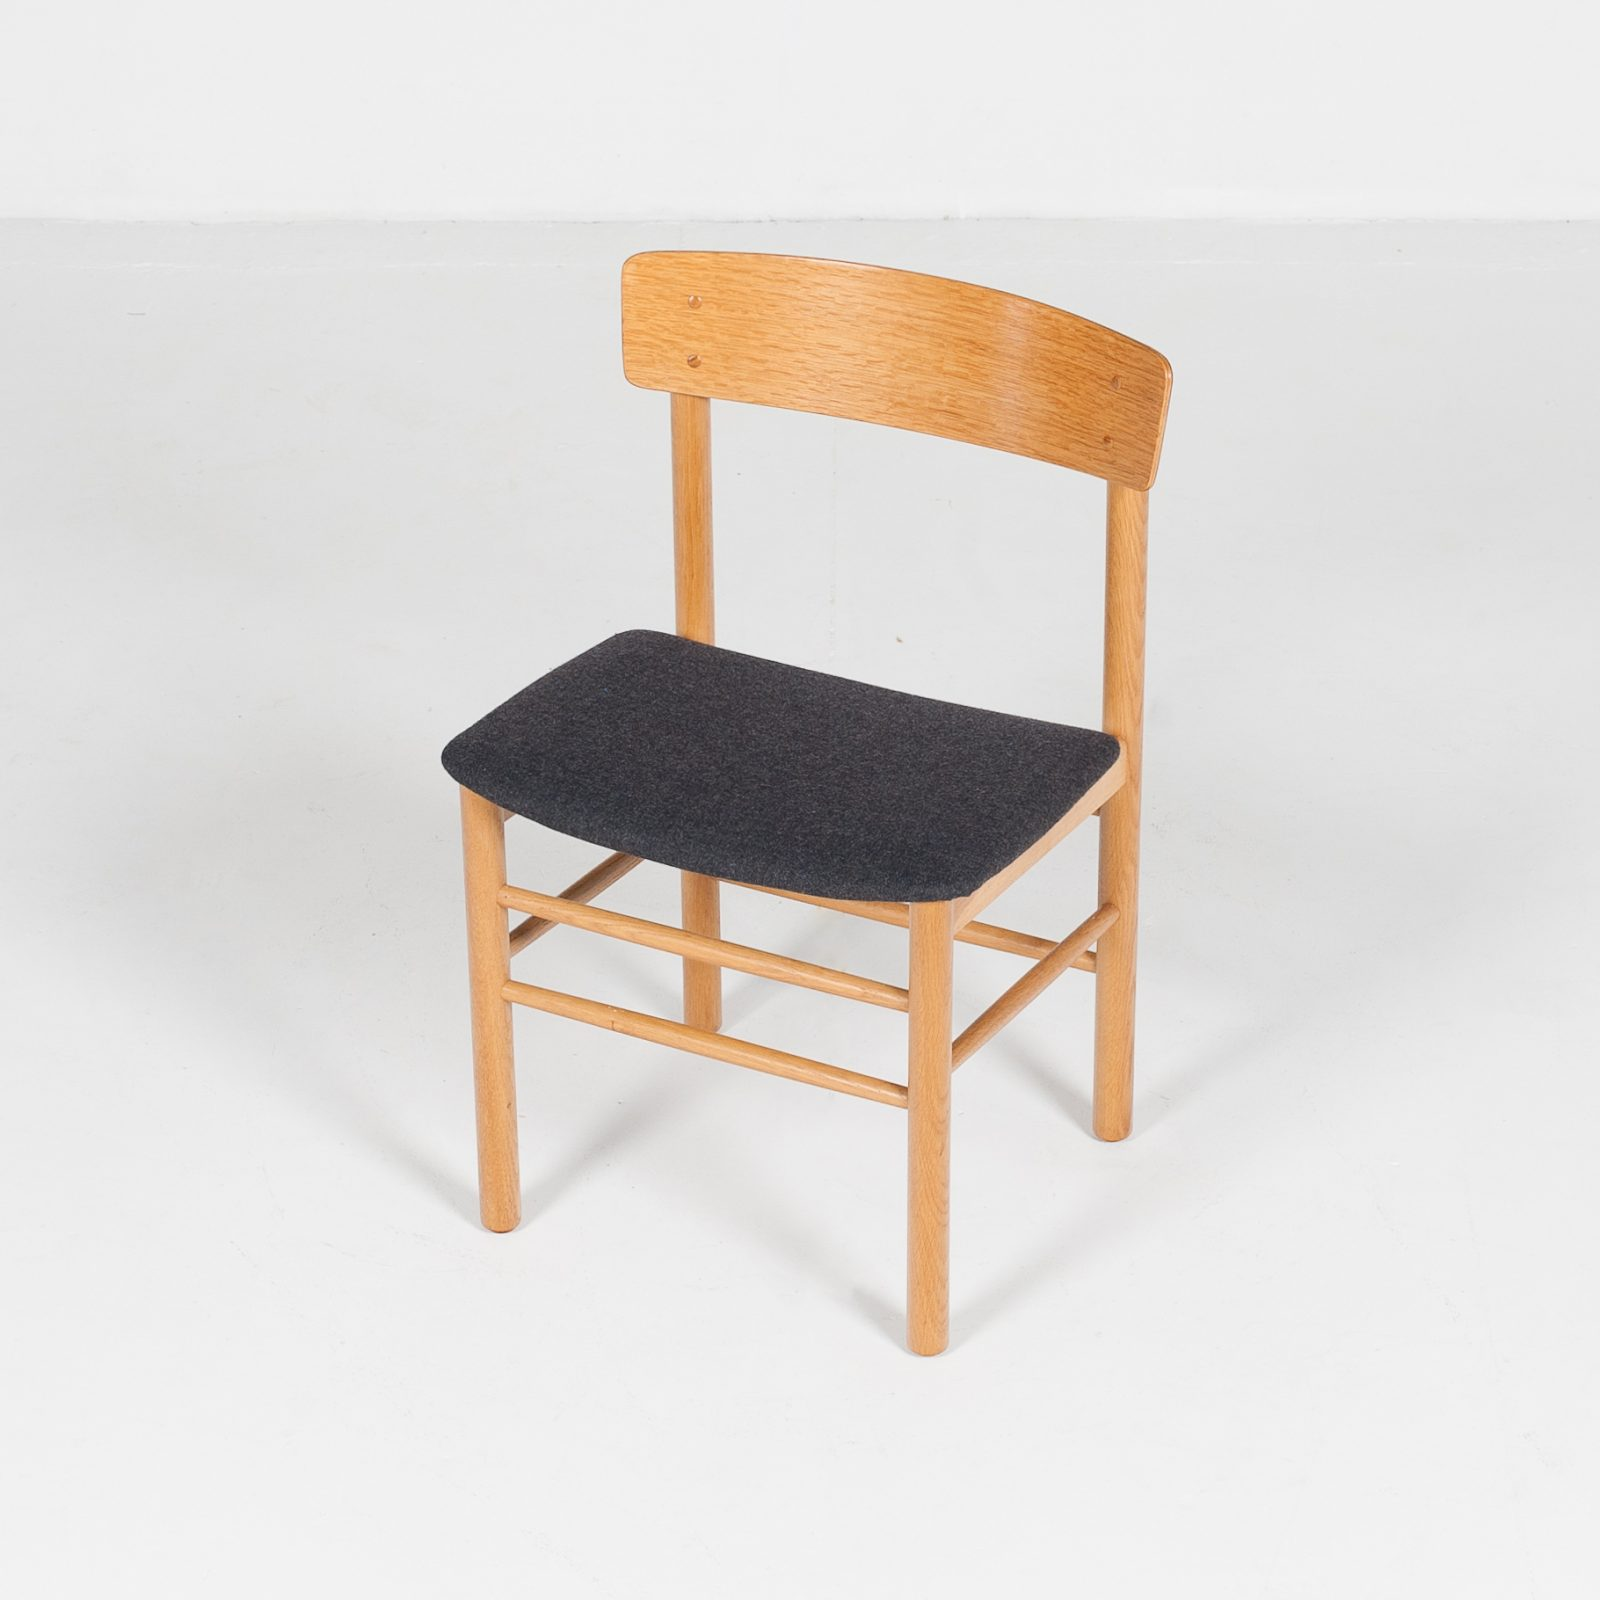 Set Of 4 Shaker Style Dining Chairs By Farstrup In Oak, 1960s, Denmark65